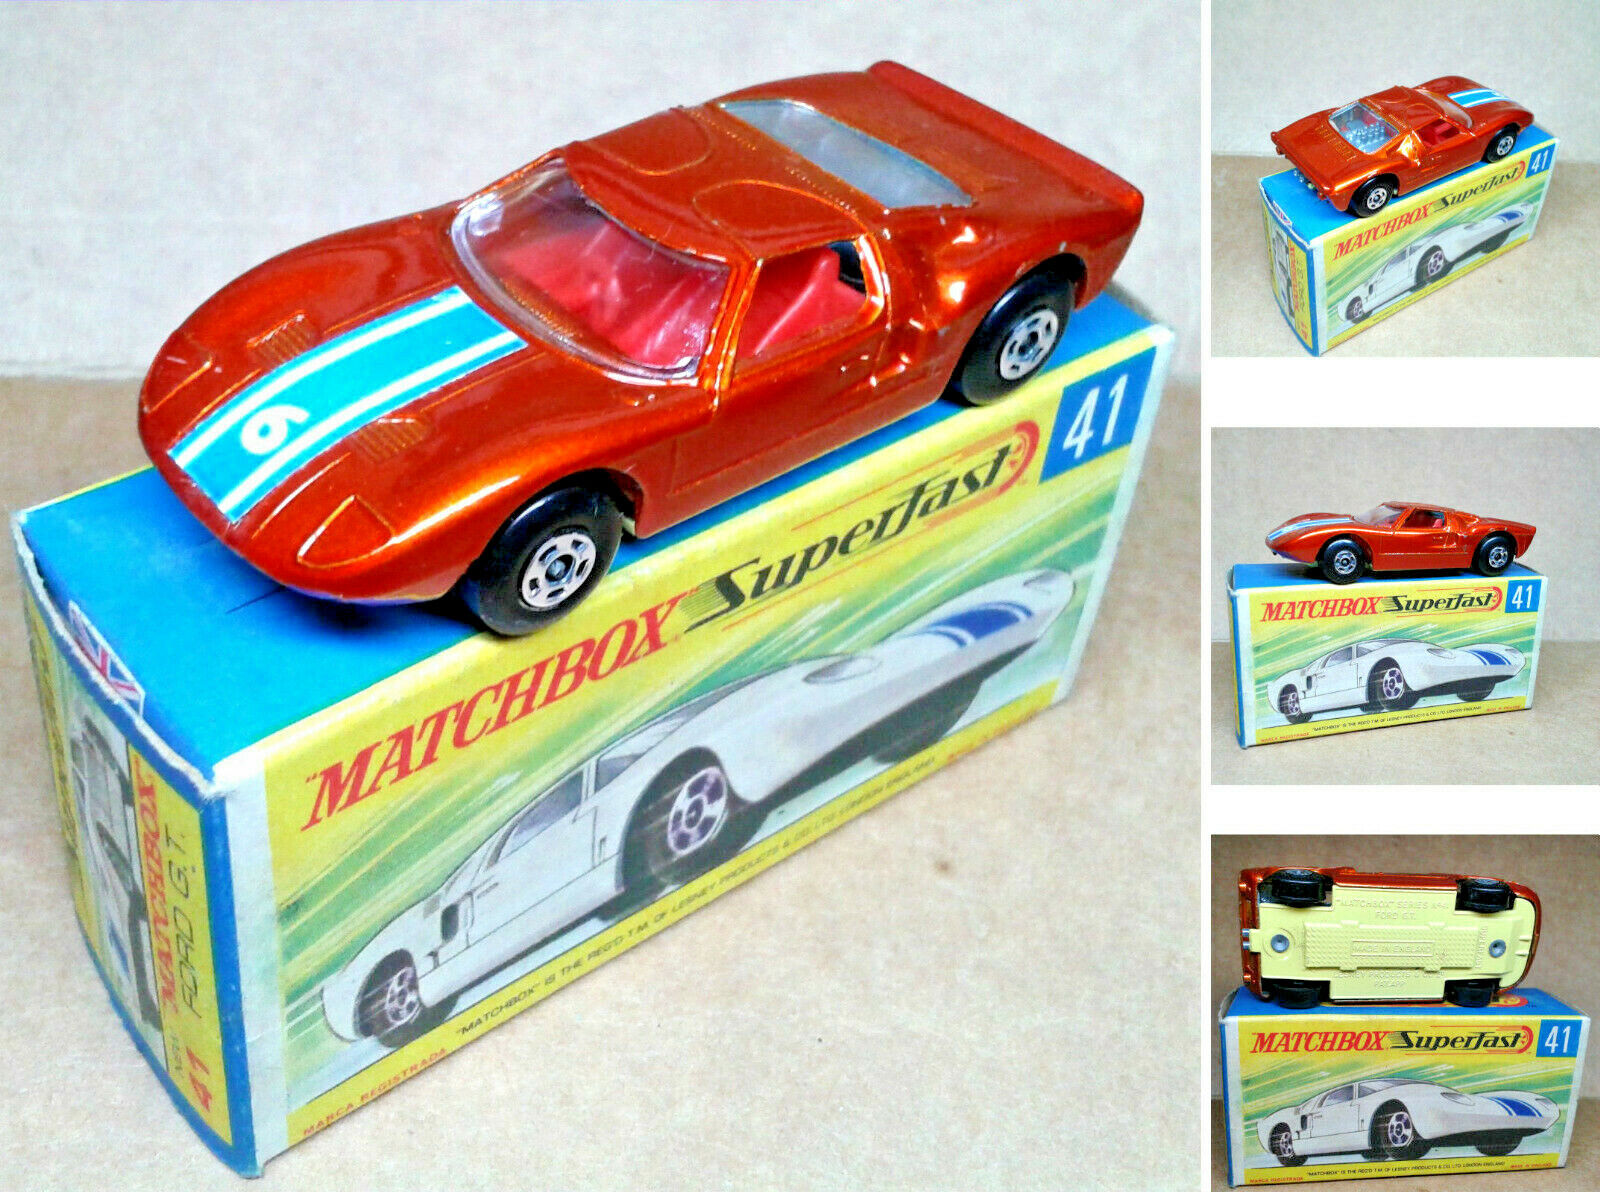 1 vintage (années) MATCHBOX SUPERFAST-NO.41 -  Ford GT G.T.  -  Comme neuf IN BOX